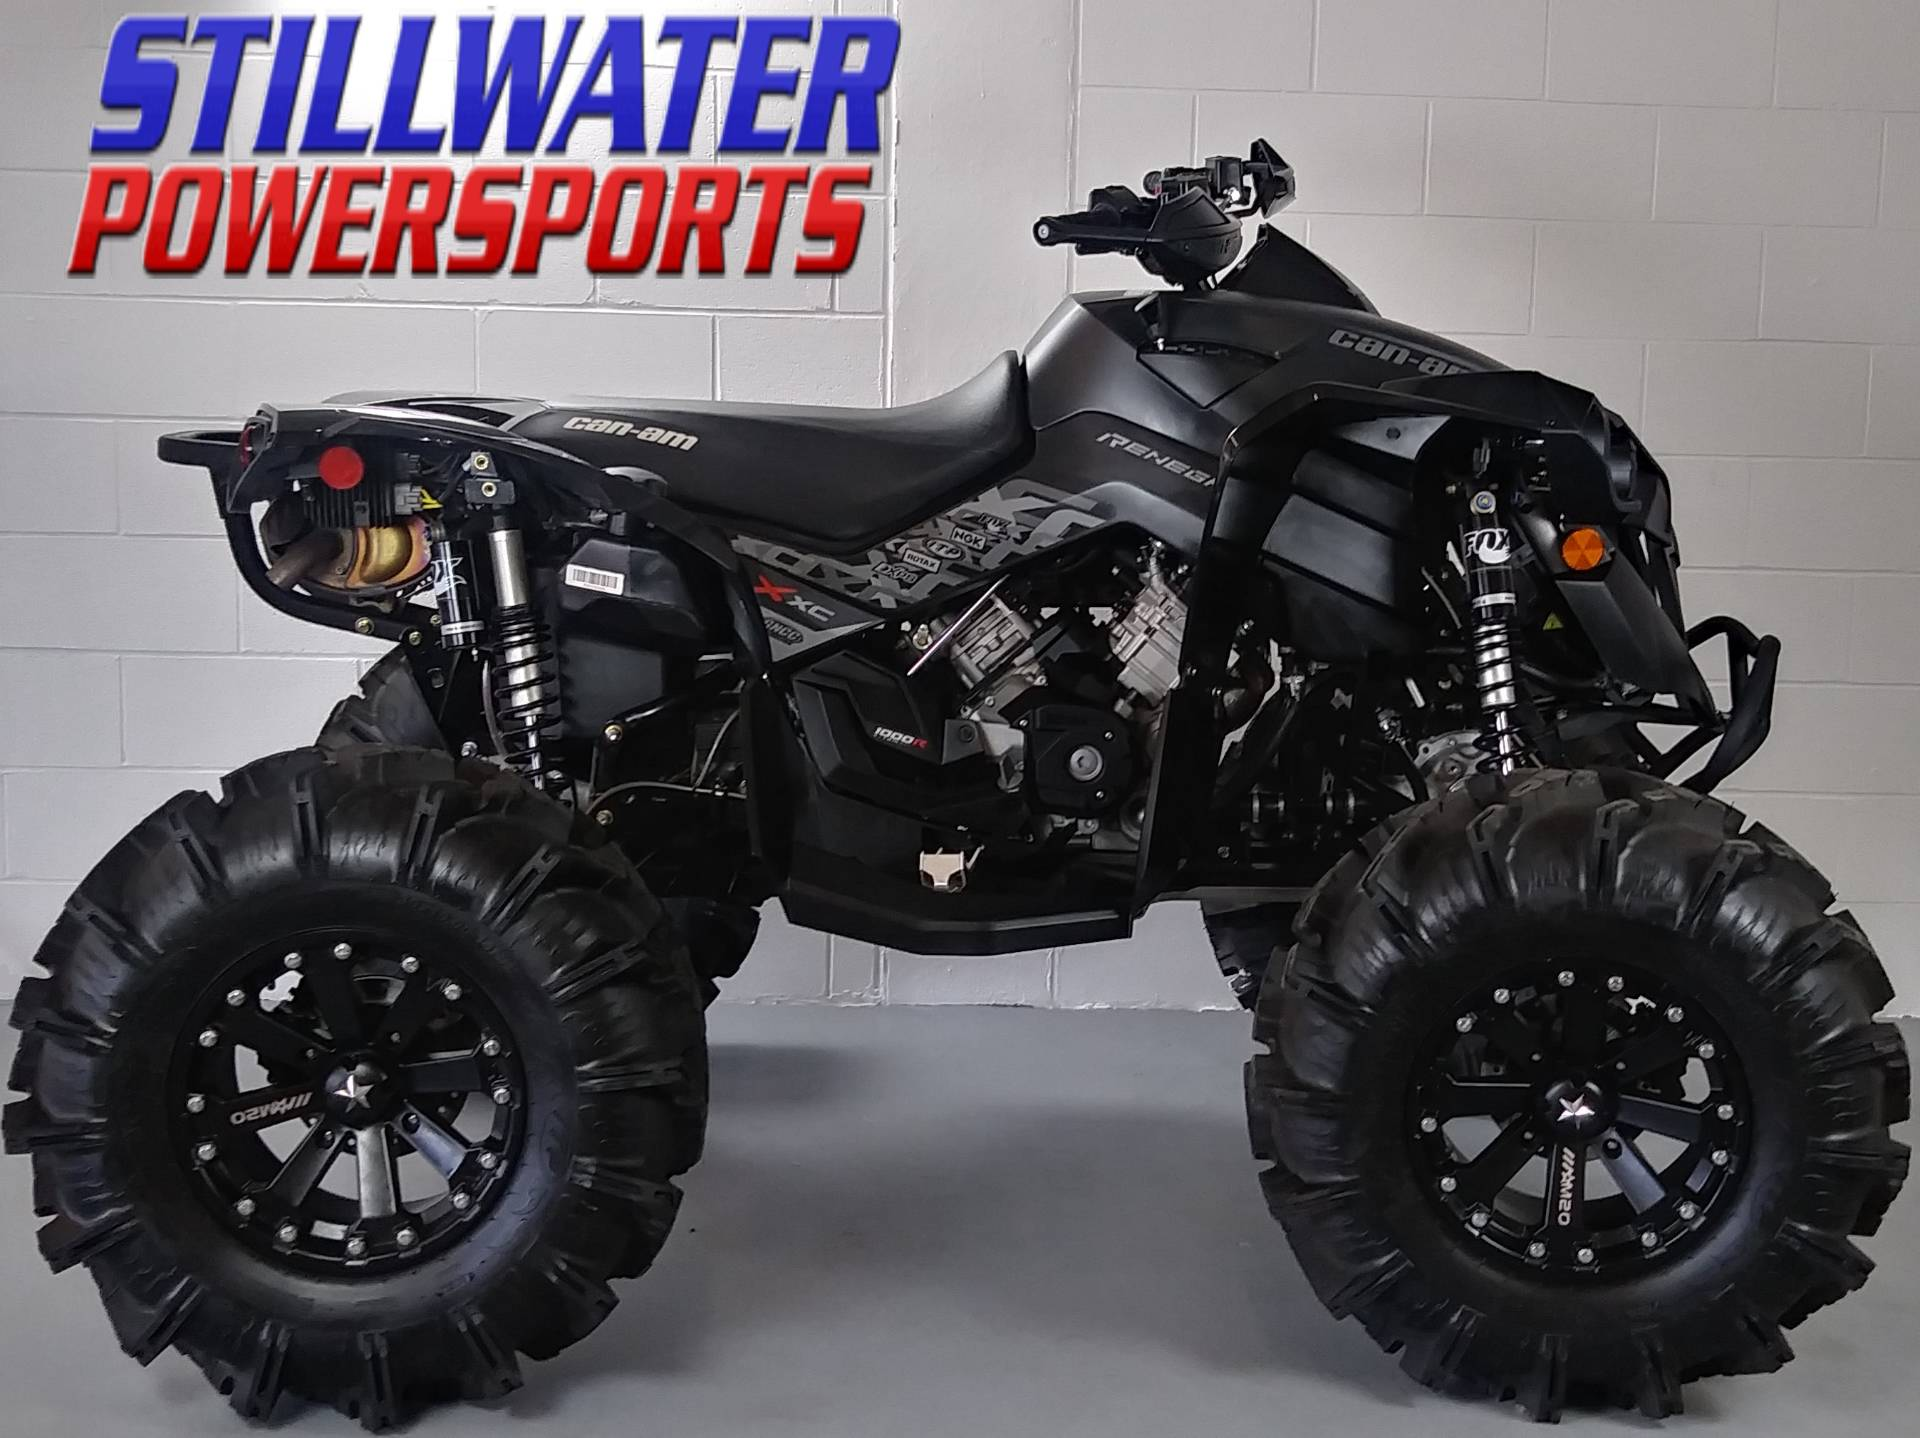 2018 Can-Am Renegade X xc 1000R in Stillwater, Oklahoma